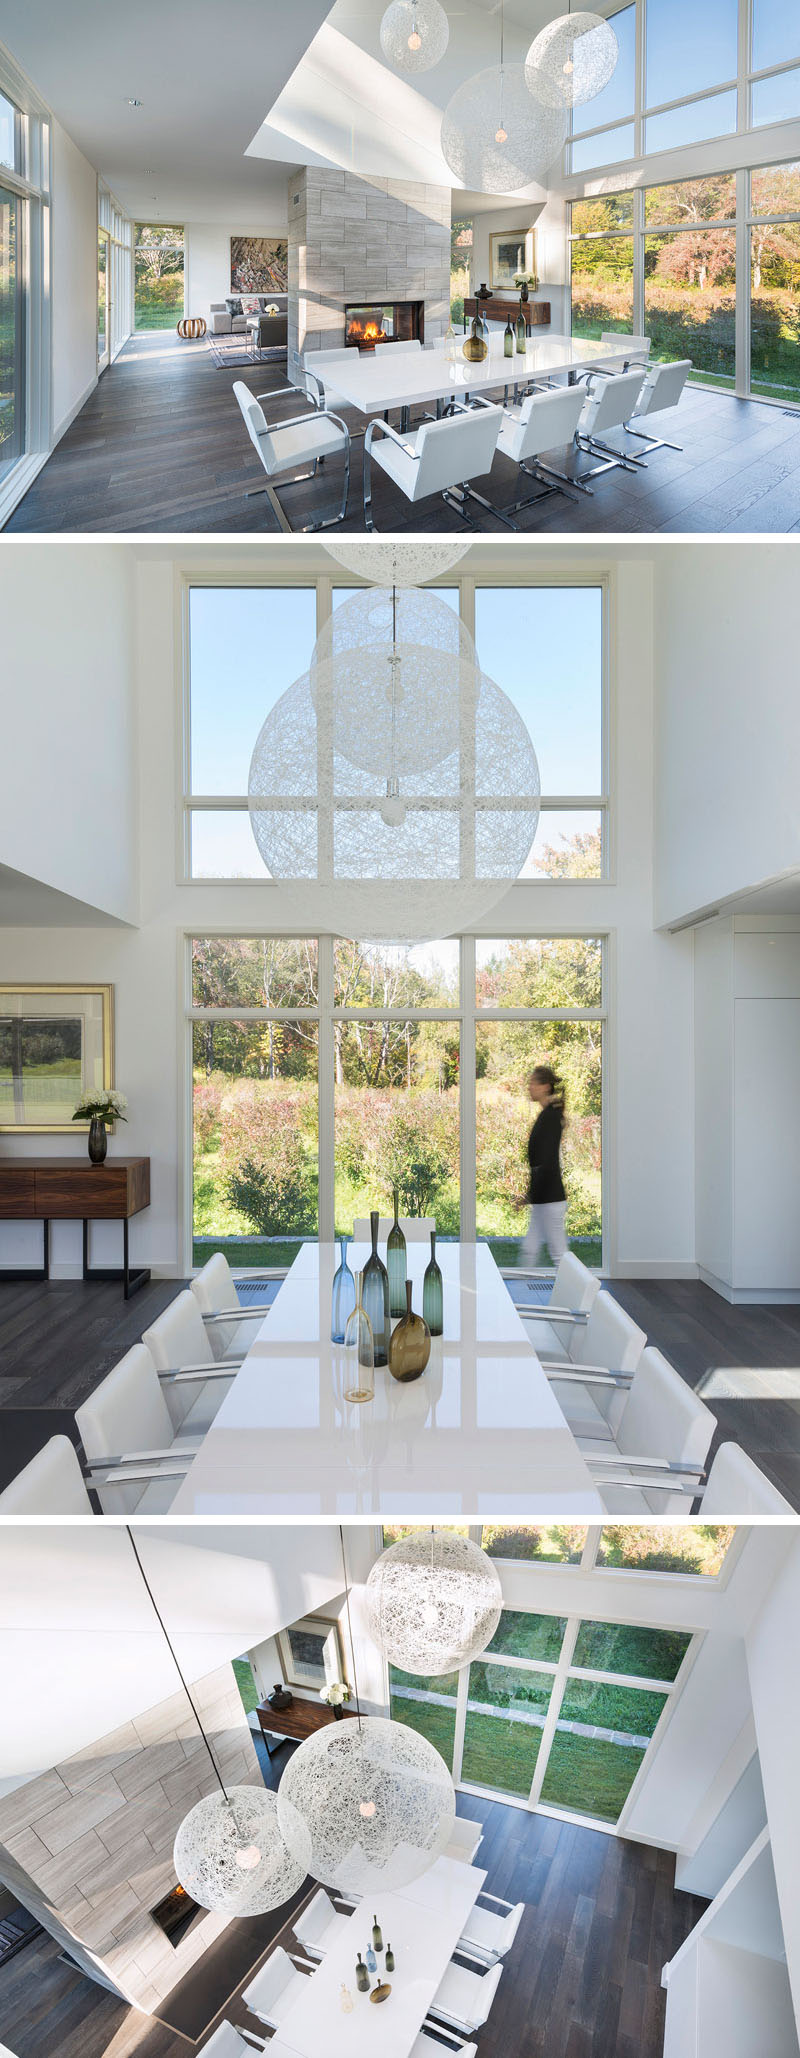 Contemporist A New Family Home In Massachusetts Surrounded By A Blueberry Farm Contemporary